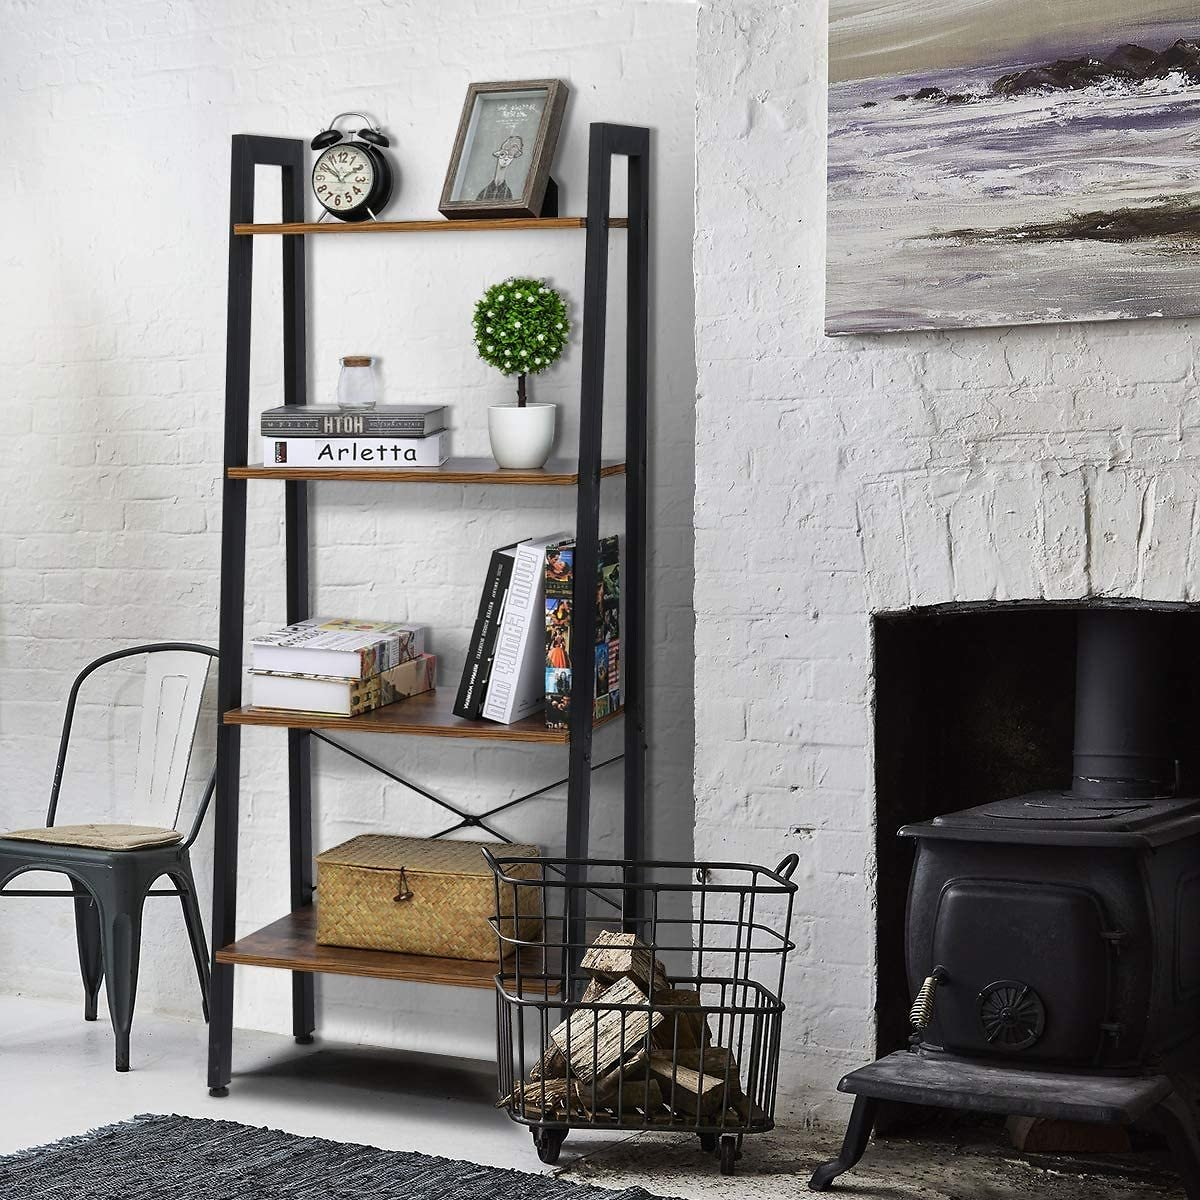 Ladder Shelf Industrial Bookshelf 4 Tier Storage Shelves Wood Black Bookshelf Display Book Shelves and Bookcases Shelving